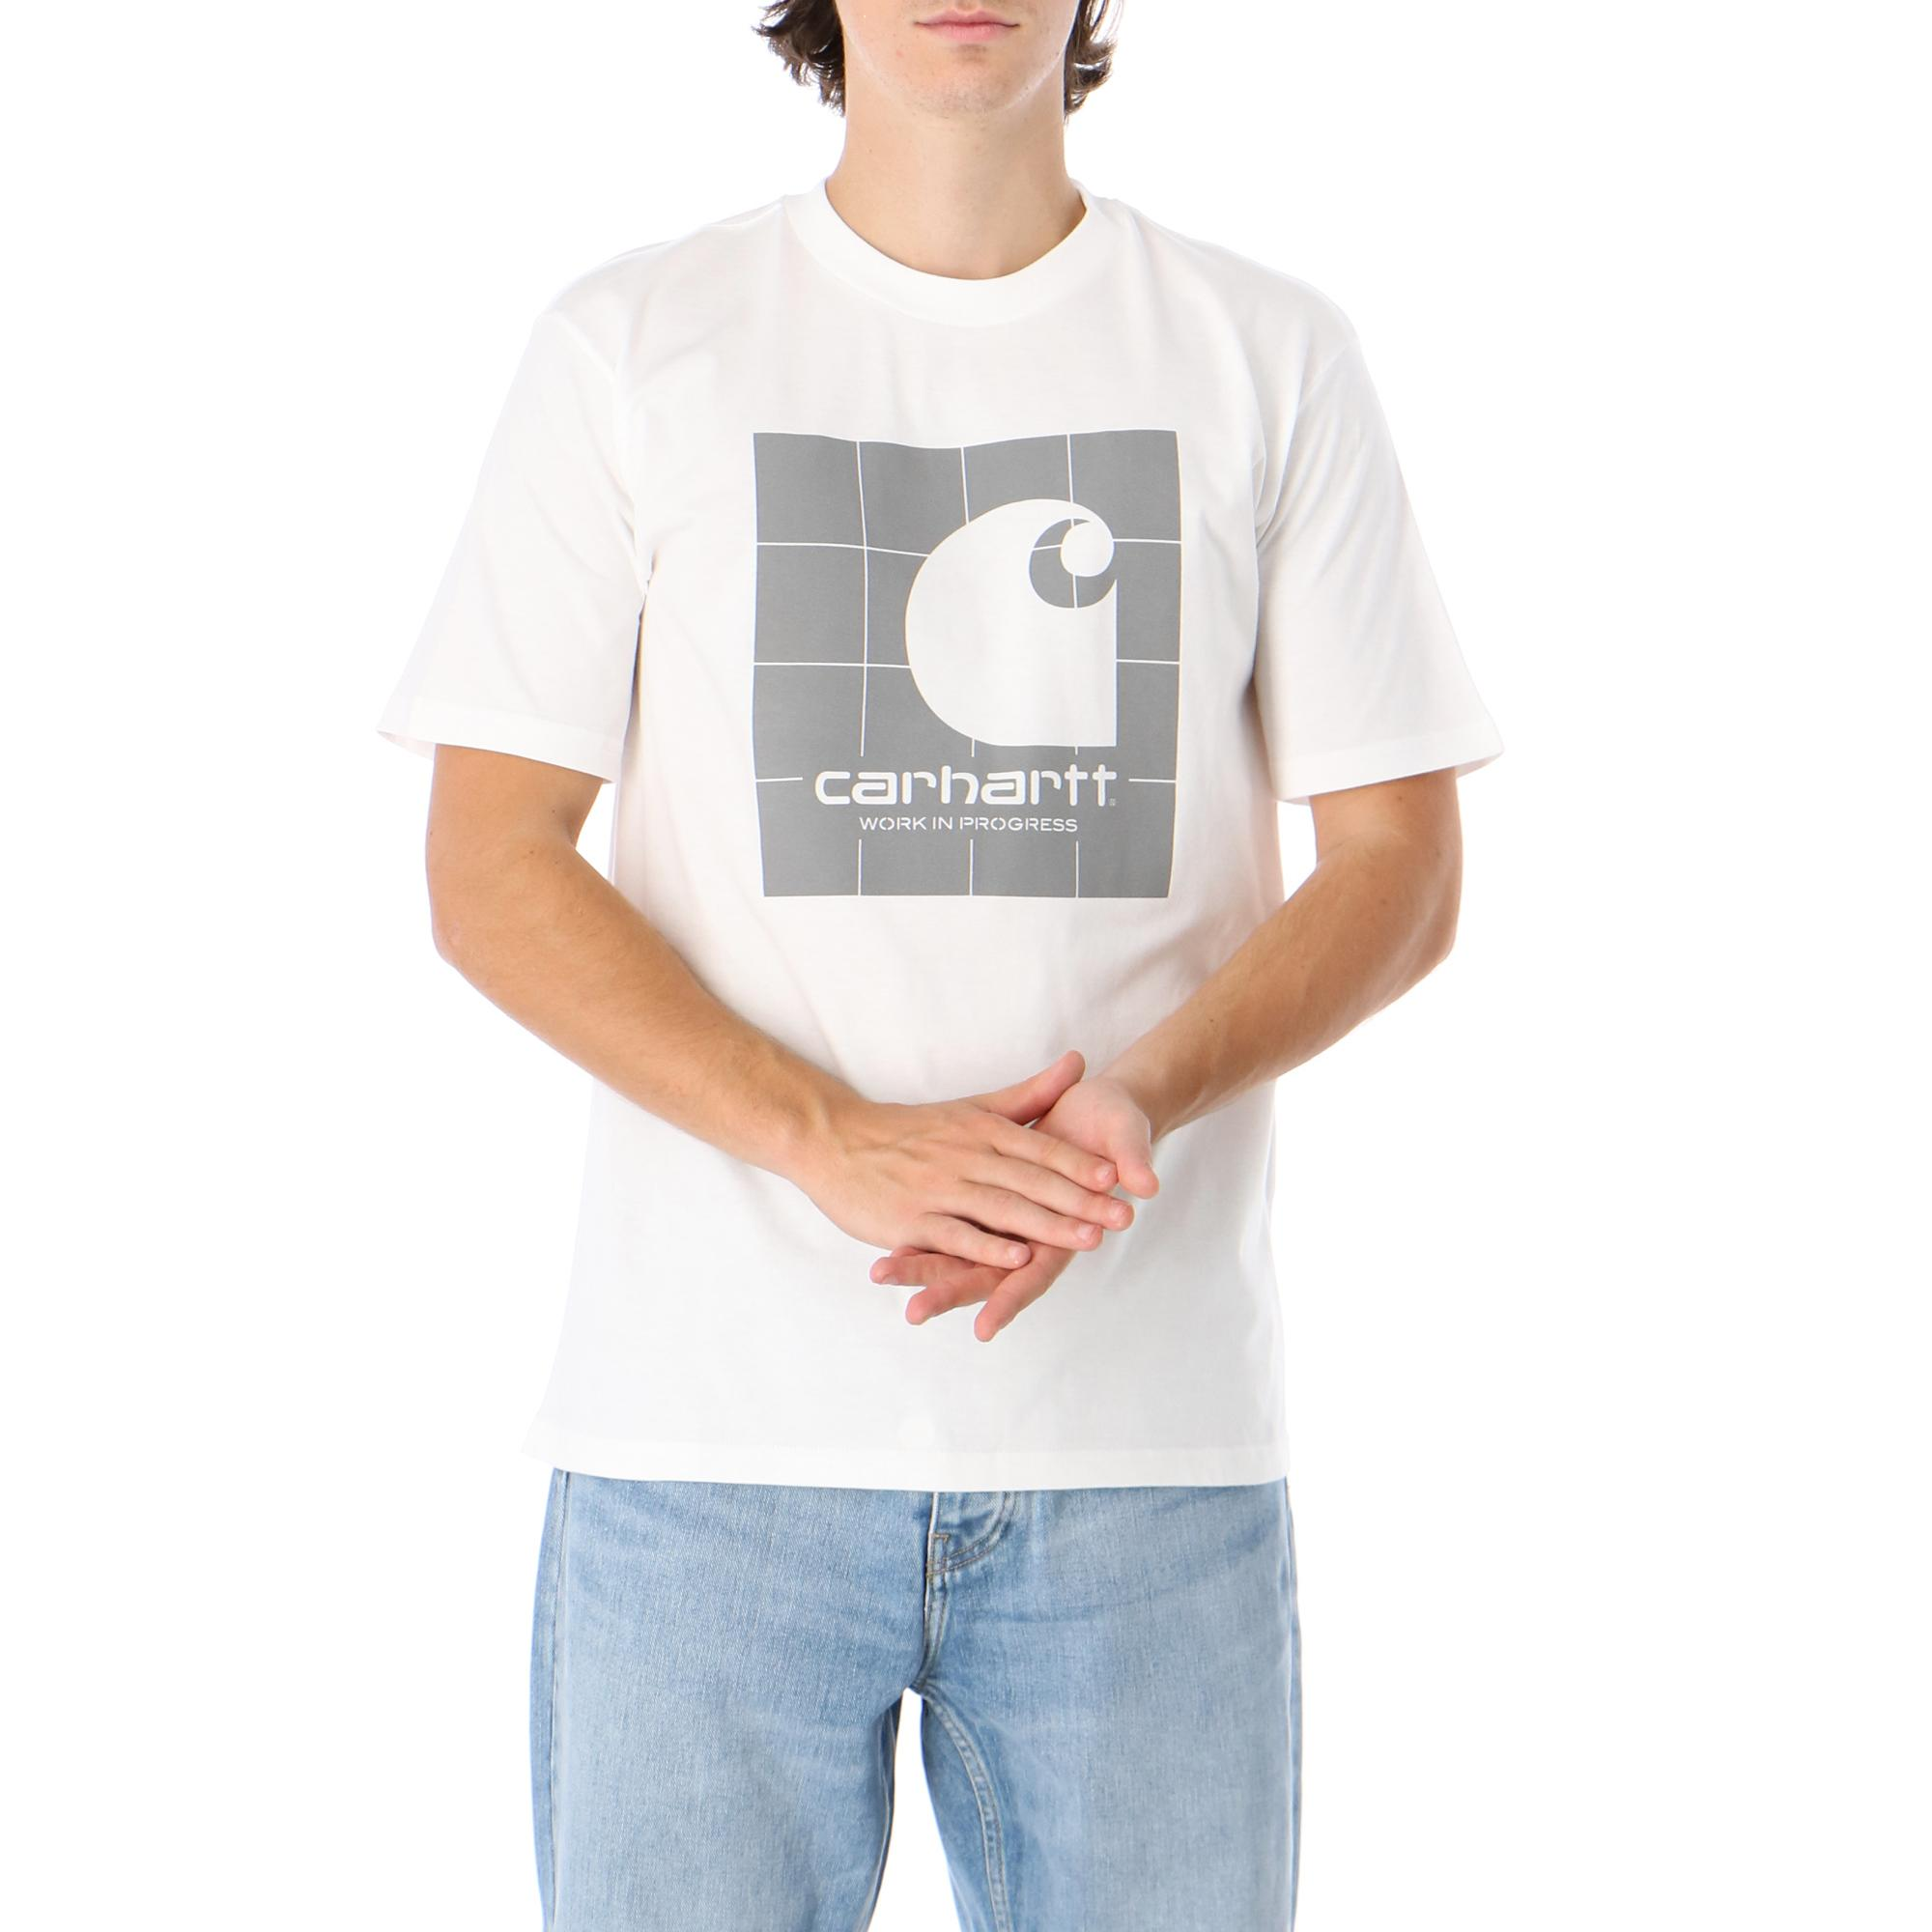 Carhartt S/s Reflective Square T-shirt White reflective grey